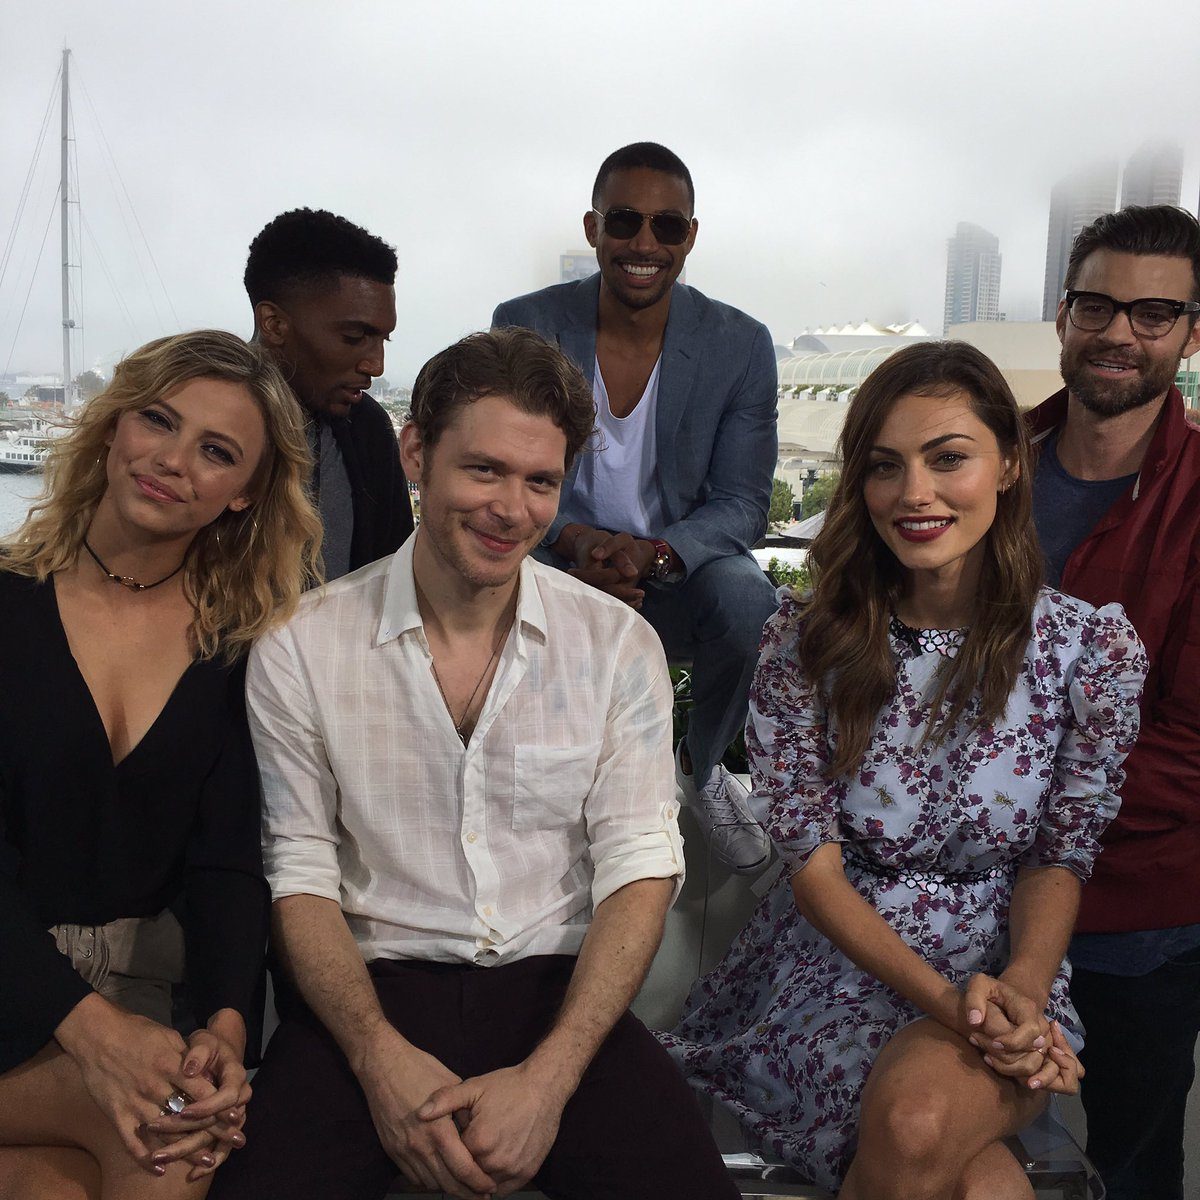 Interviewed these gems today. Such a shame they're so unattractive! #theoriginals #sdcc2016 https://t.co/BvfGguR1jq https://t.co/fBwJB7GAwZ